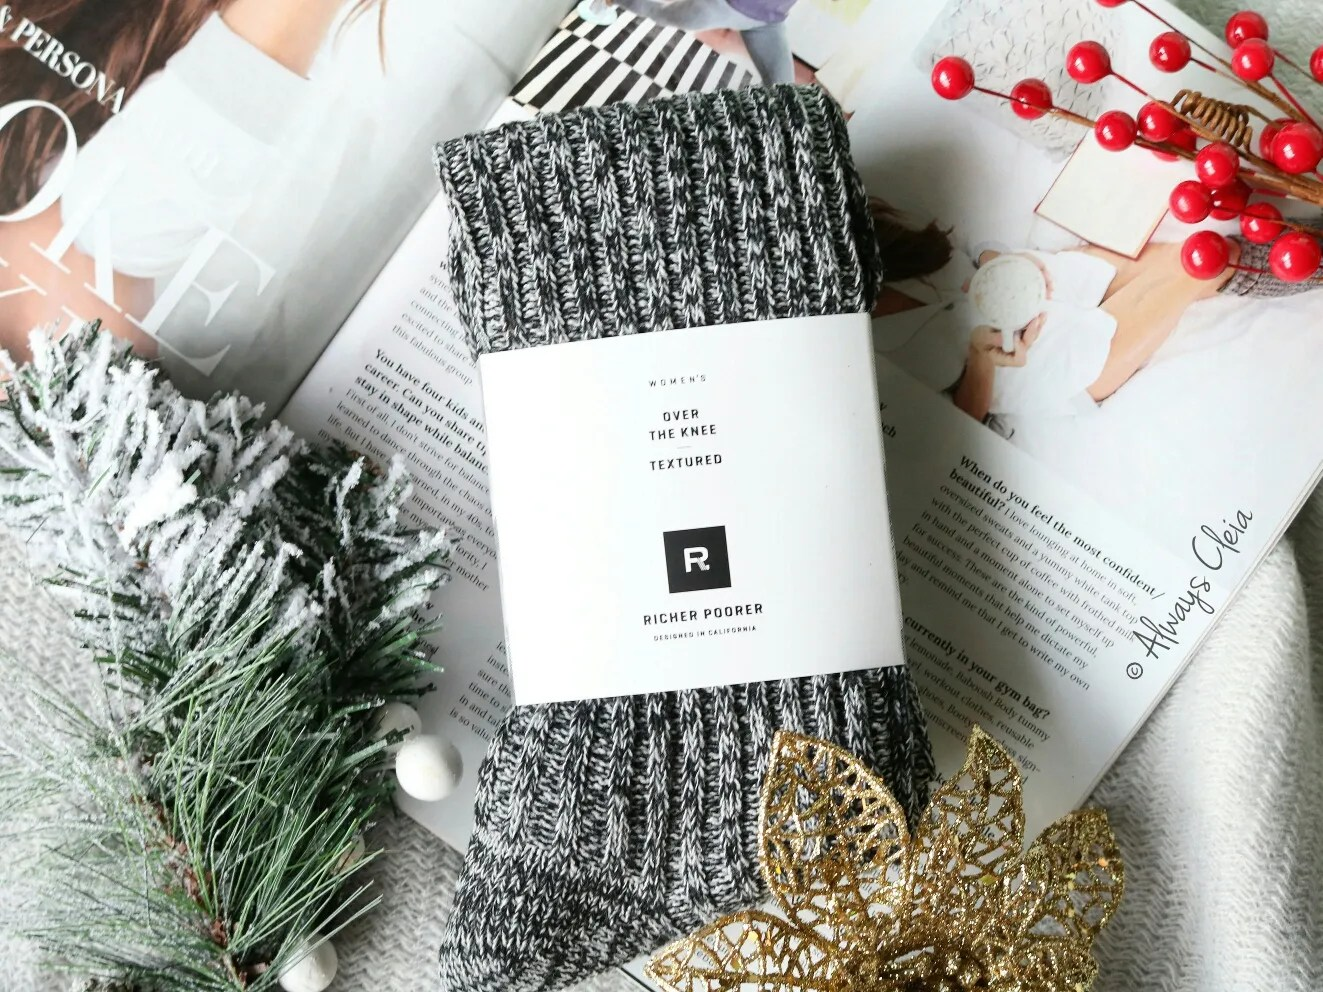 Fabfitfun Winter Box Richer Poorer Reina Over the Knee Textured Sock